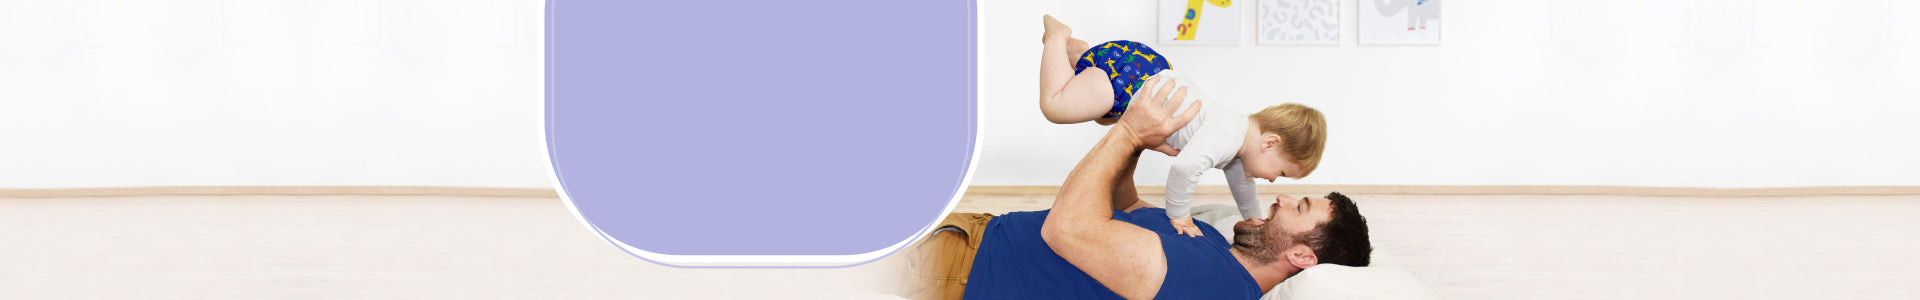 Bambino mio reusable nappies, dad laying down with baby